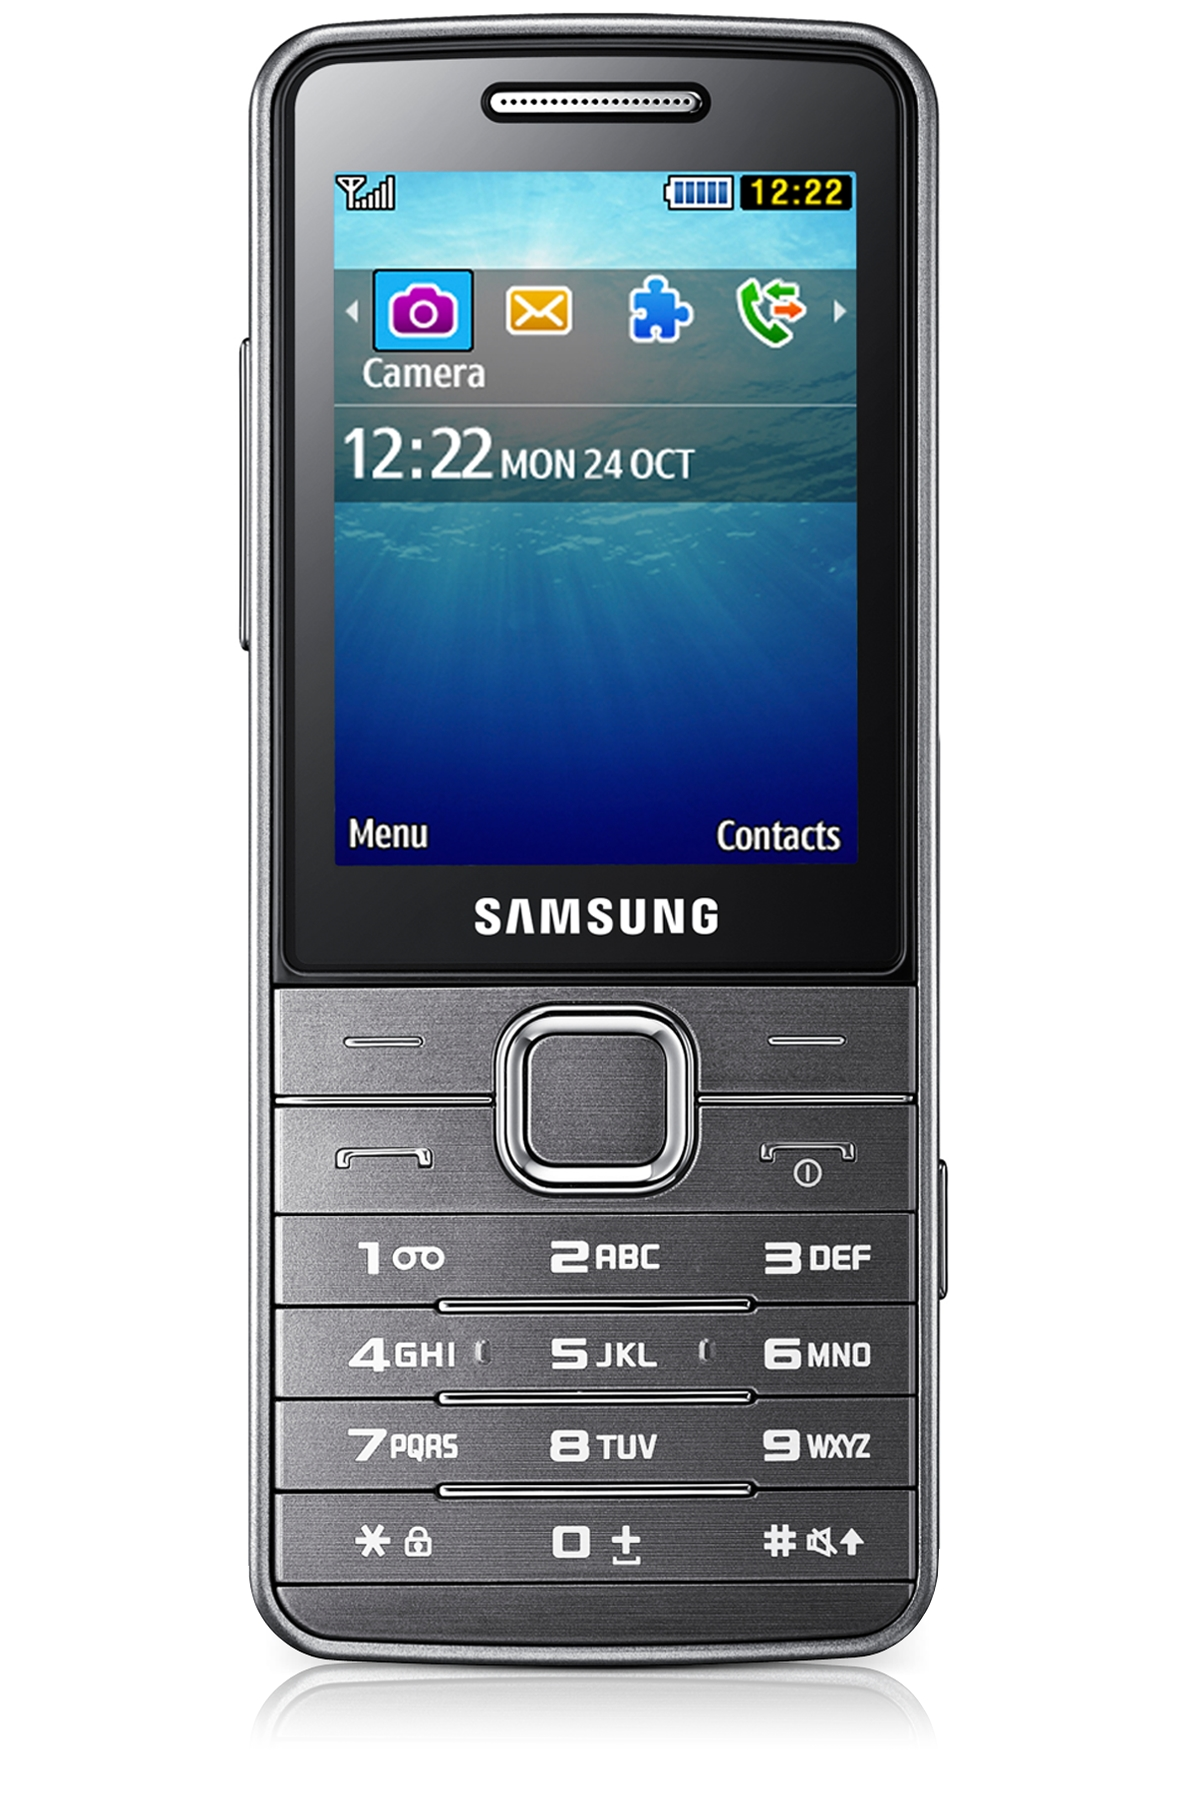 Samsung S5610 (Black) - See Full Specs and more | Samsung UK